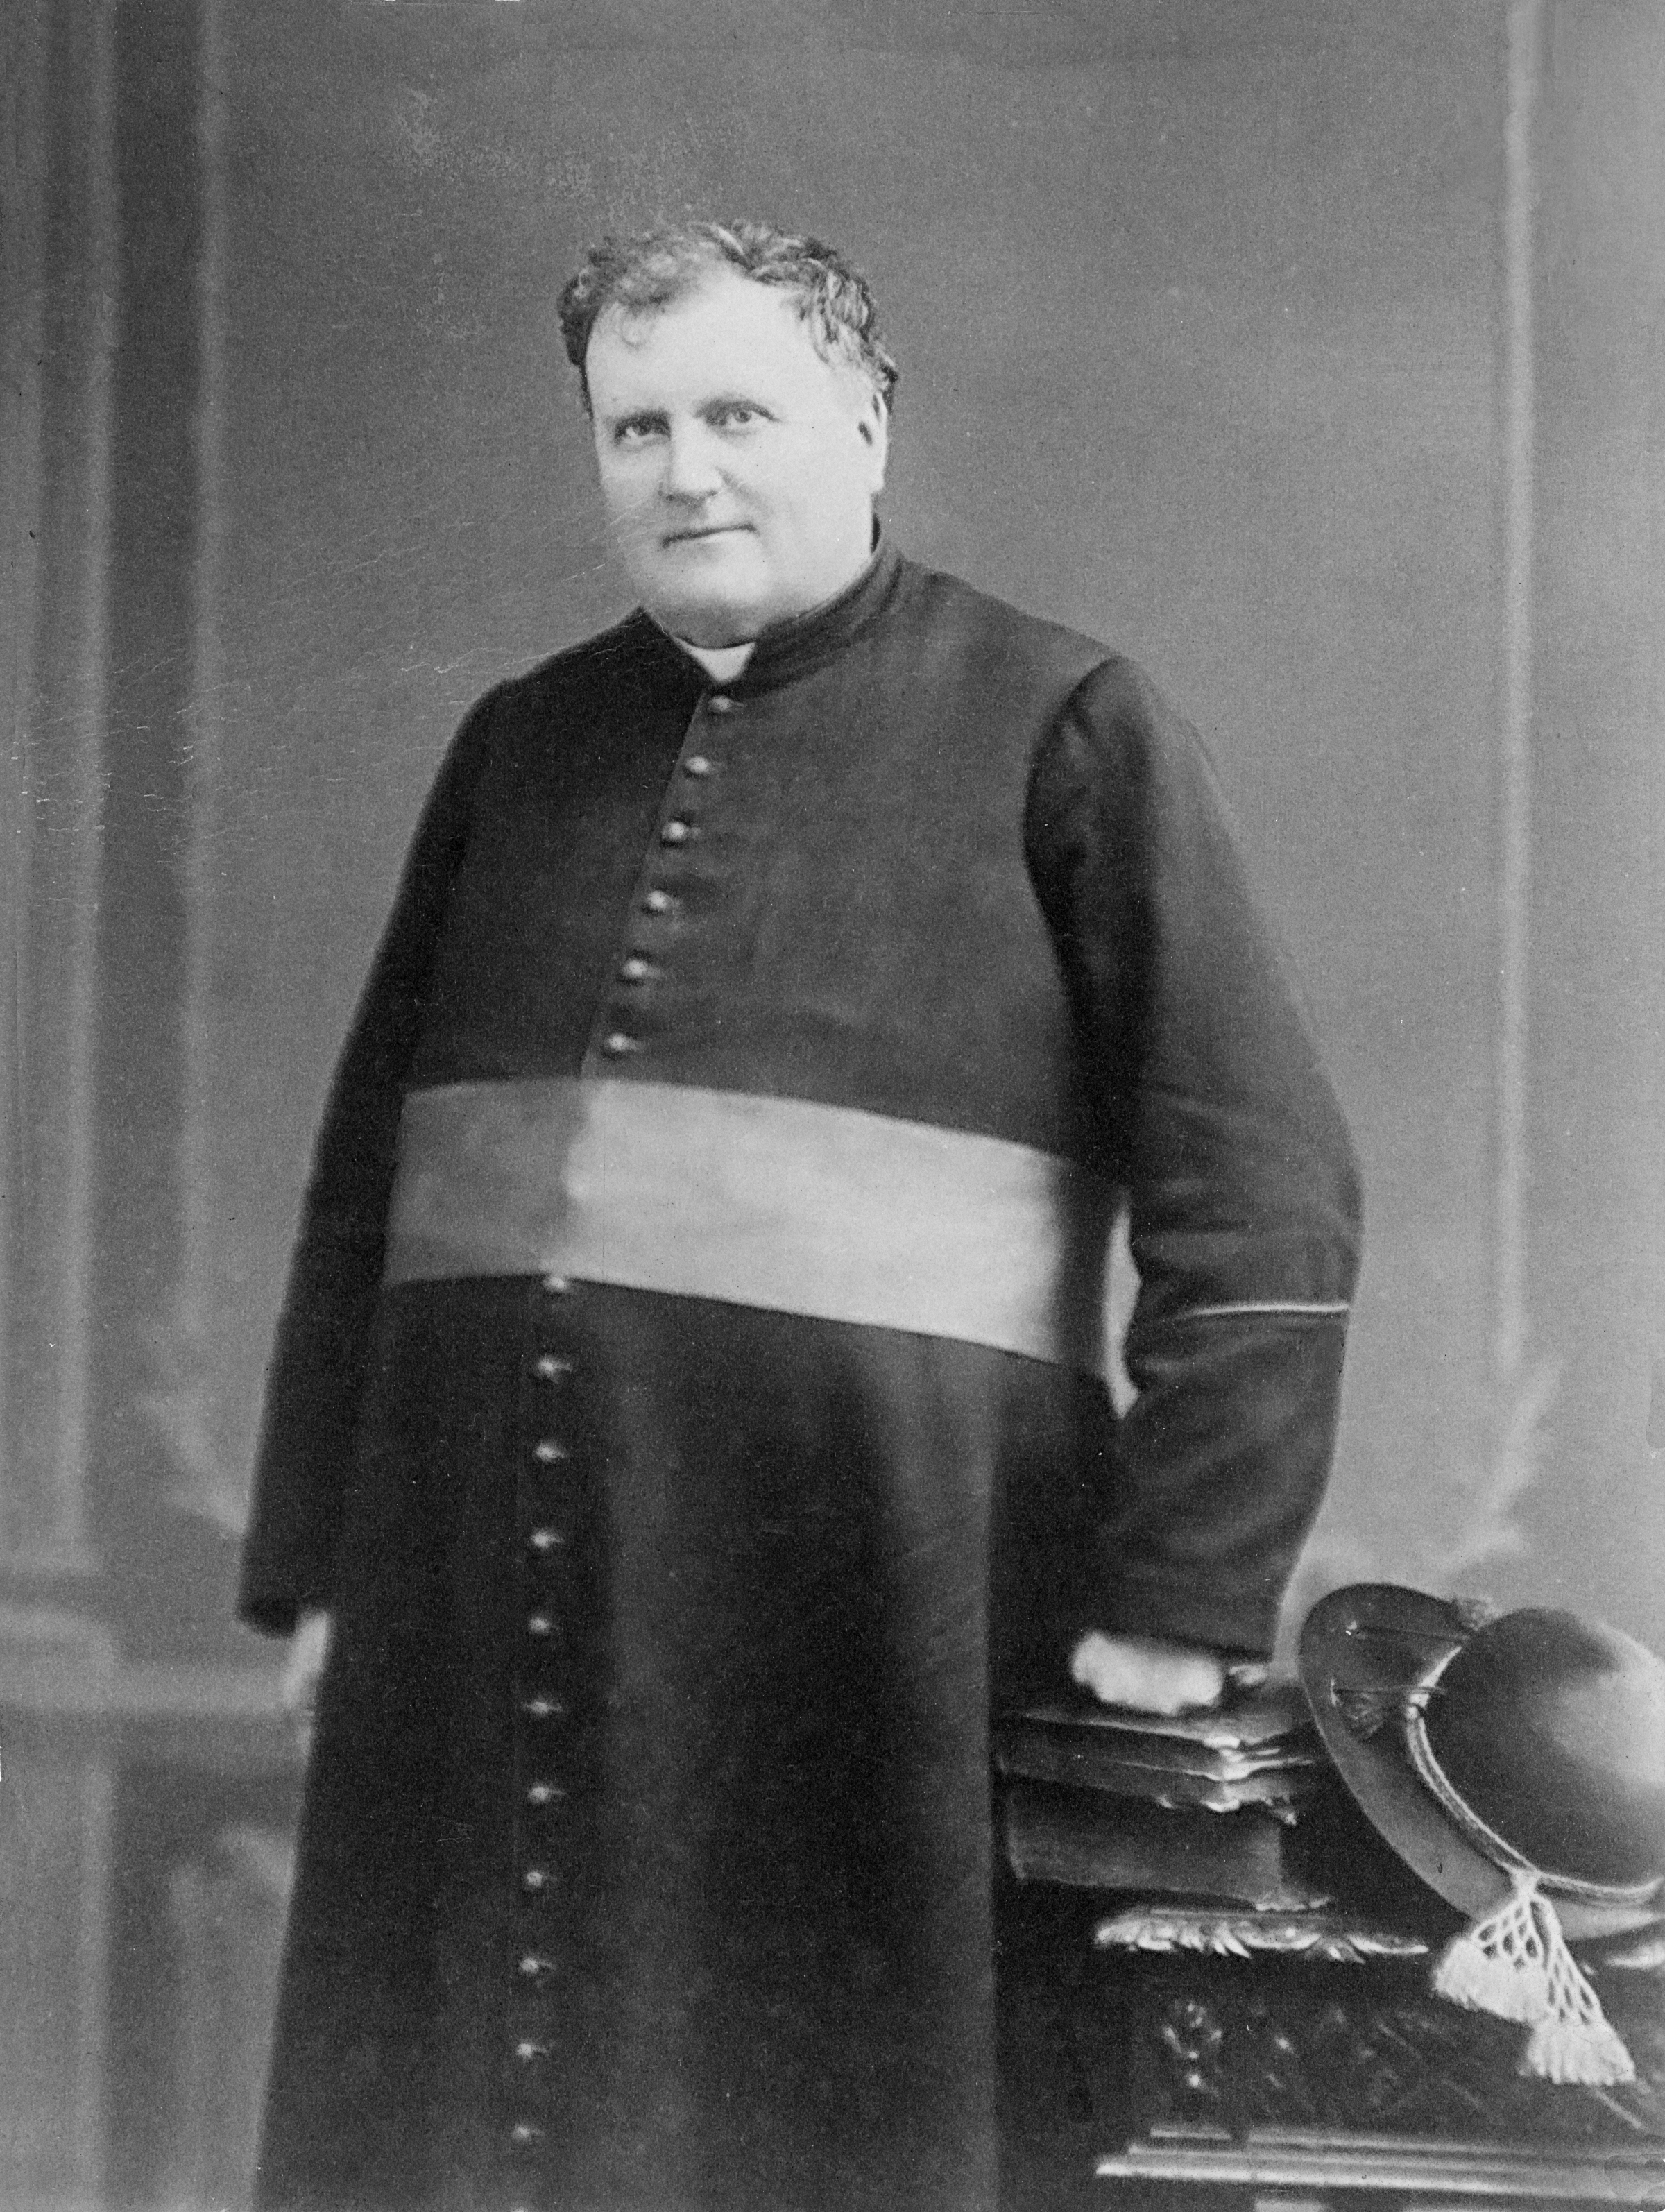 Black & white photograph of a man in his late fifties. He is standing and wears a cassock with a sash, symbolizing his status as Monseigneur. Two books and a felt hat rest on a low, carved table next to him. He rests his fist on the books.